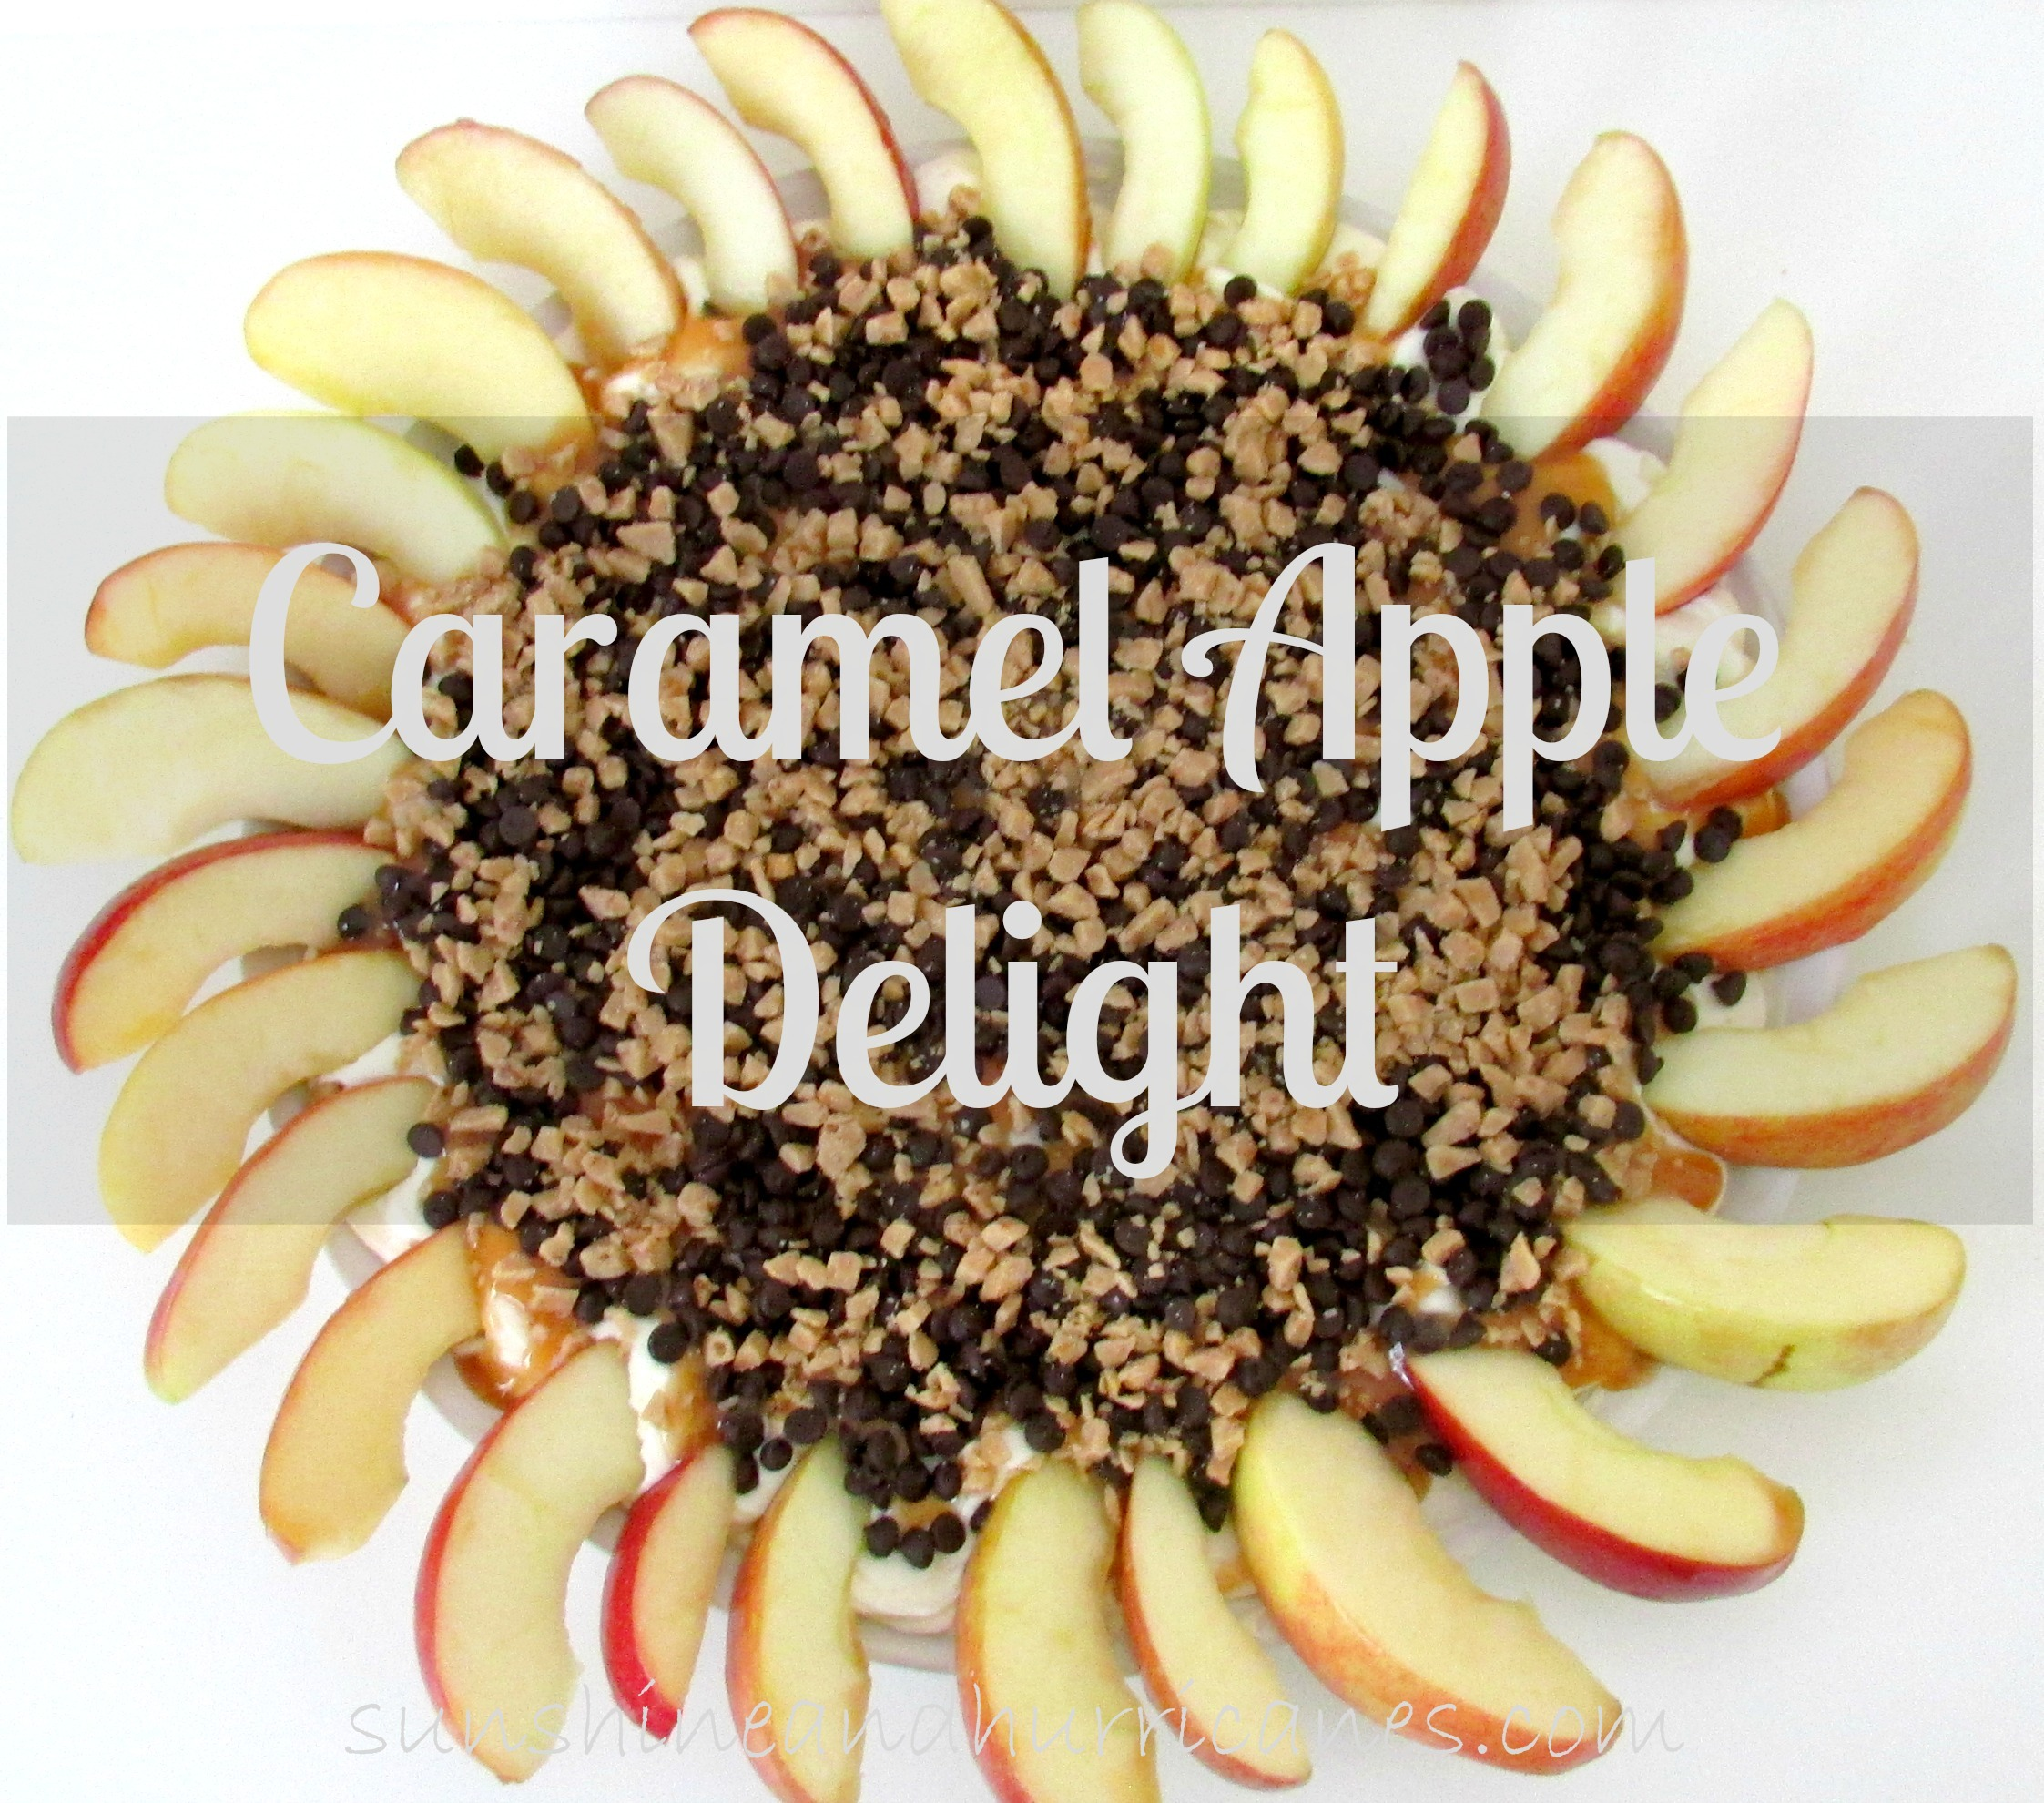 Caramel Apple Delight delicious Fall dessert